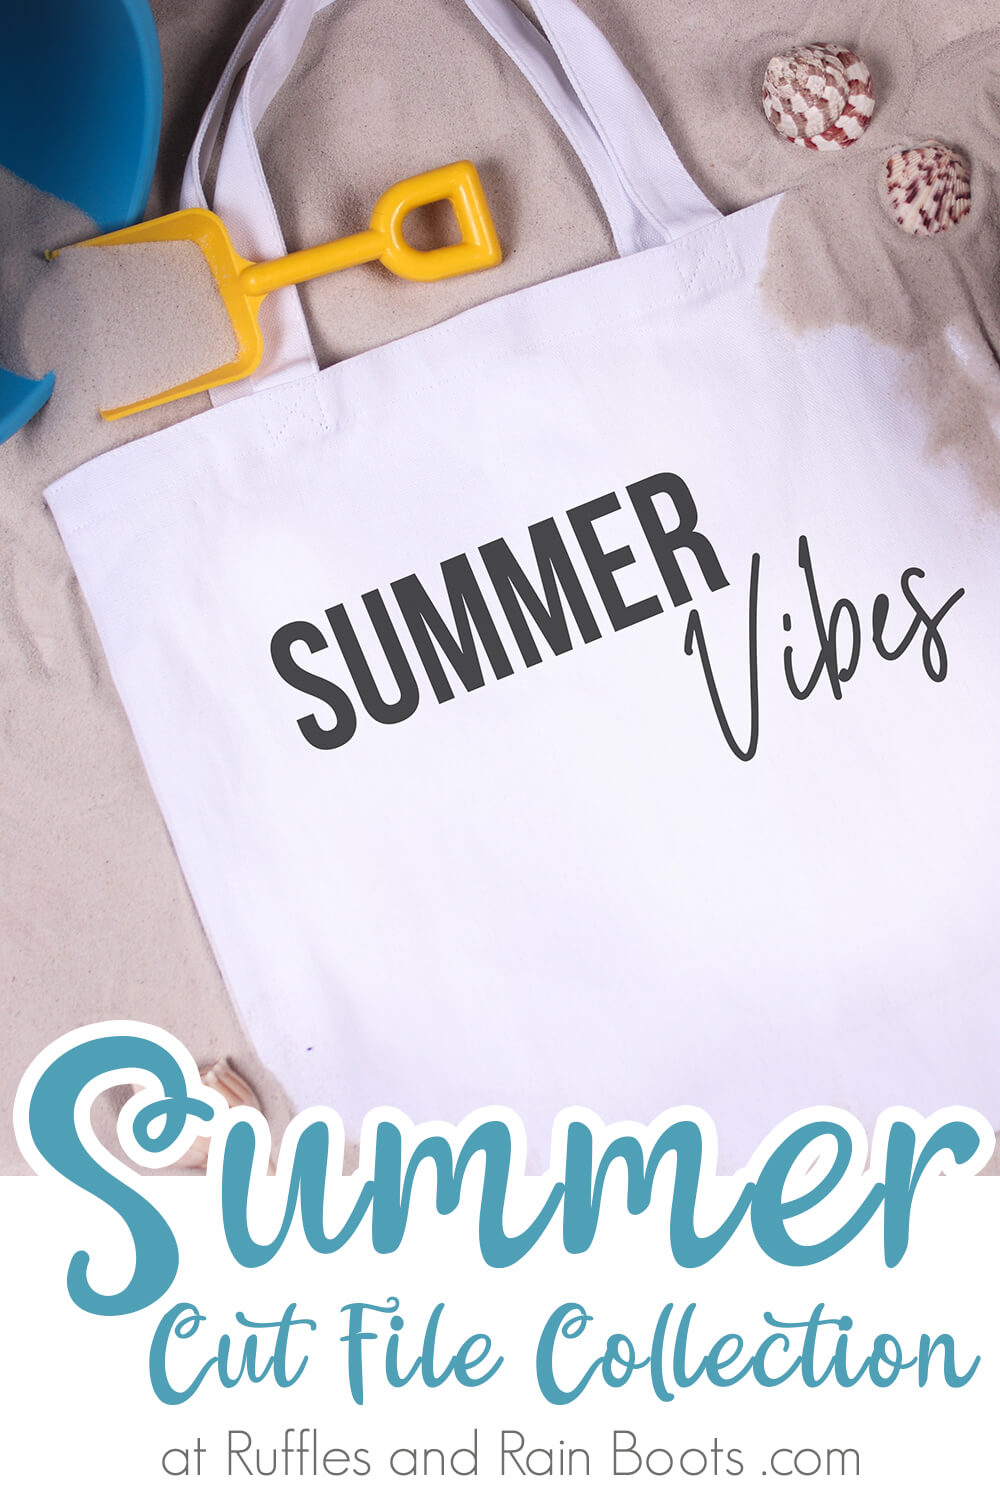 summer cricut cut file Summer Vibes SVG on beach bag with text which reads summer cut file collection